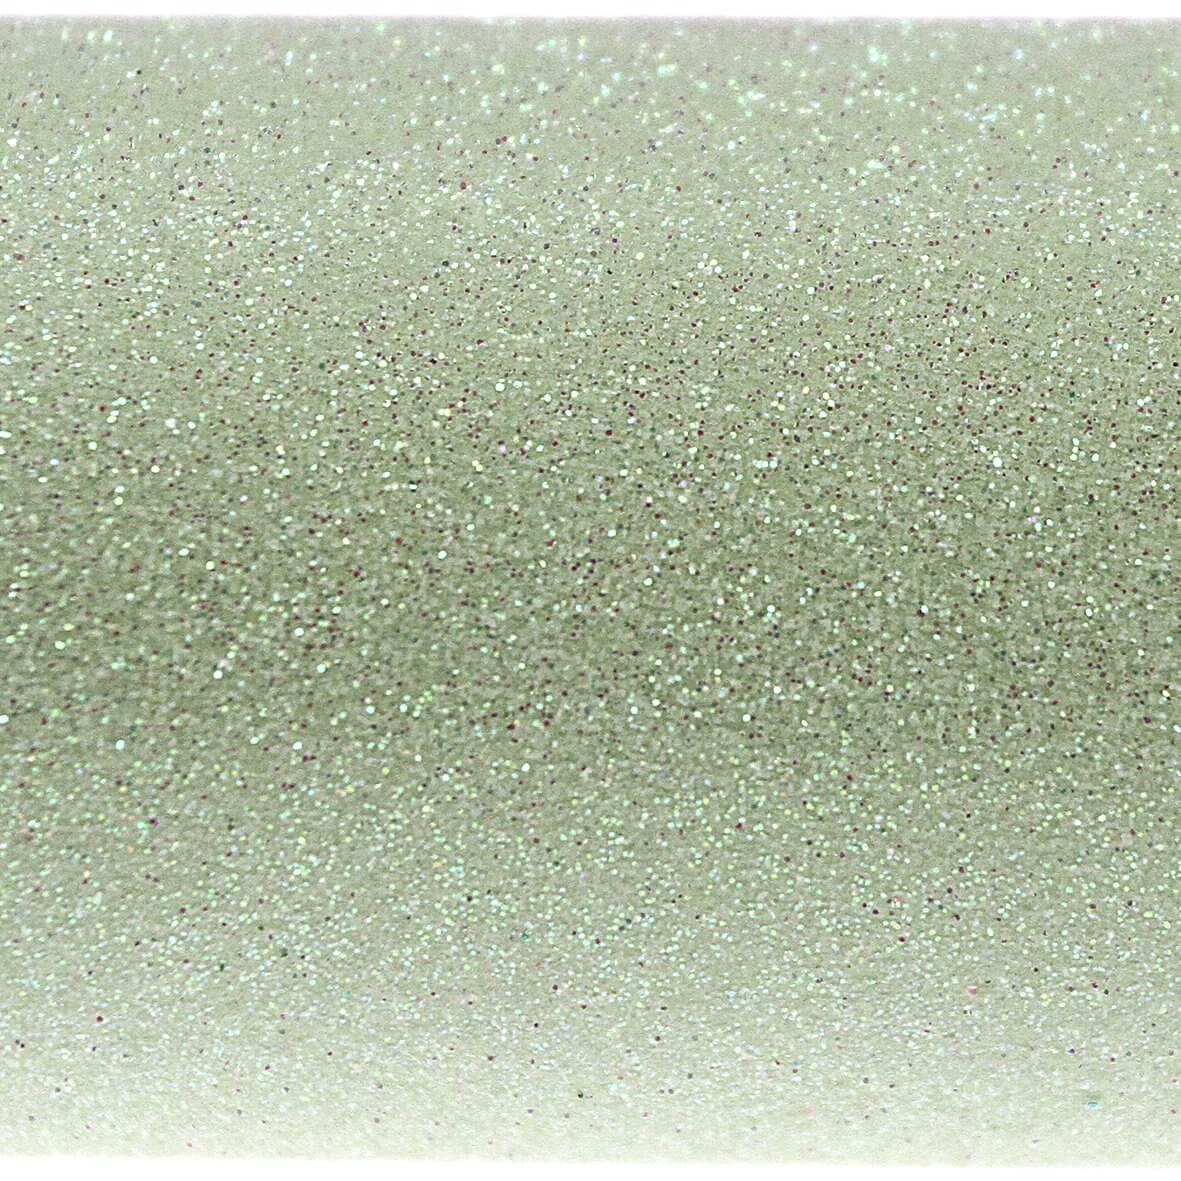 Iridescent Mint A4 Glitter Paper - Close Up